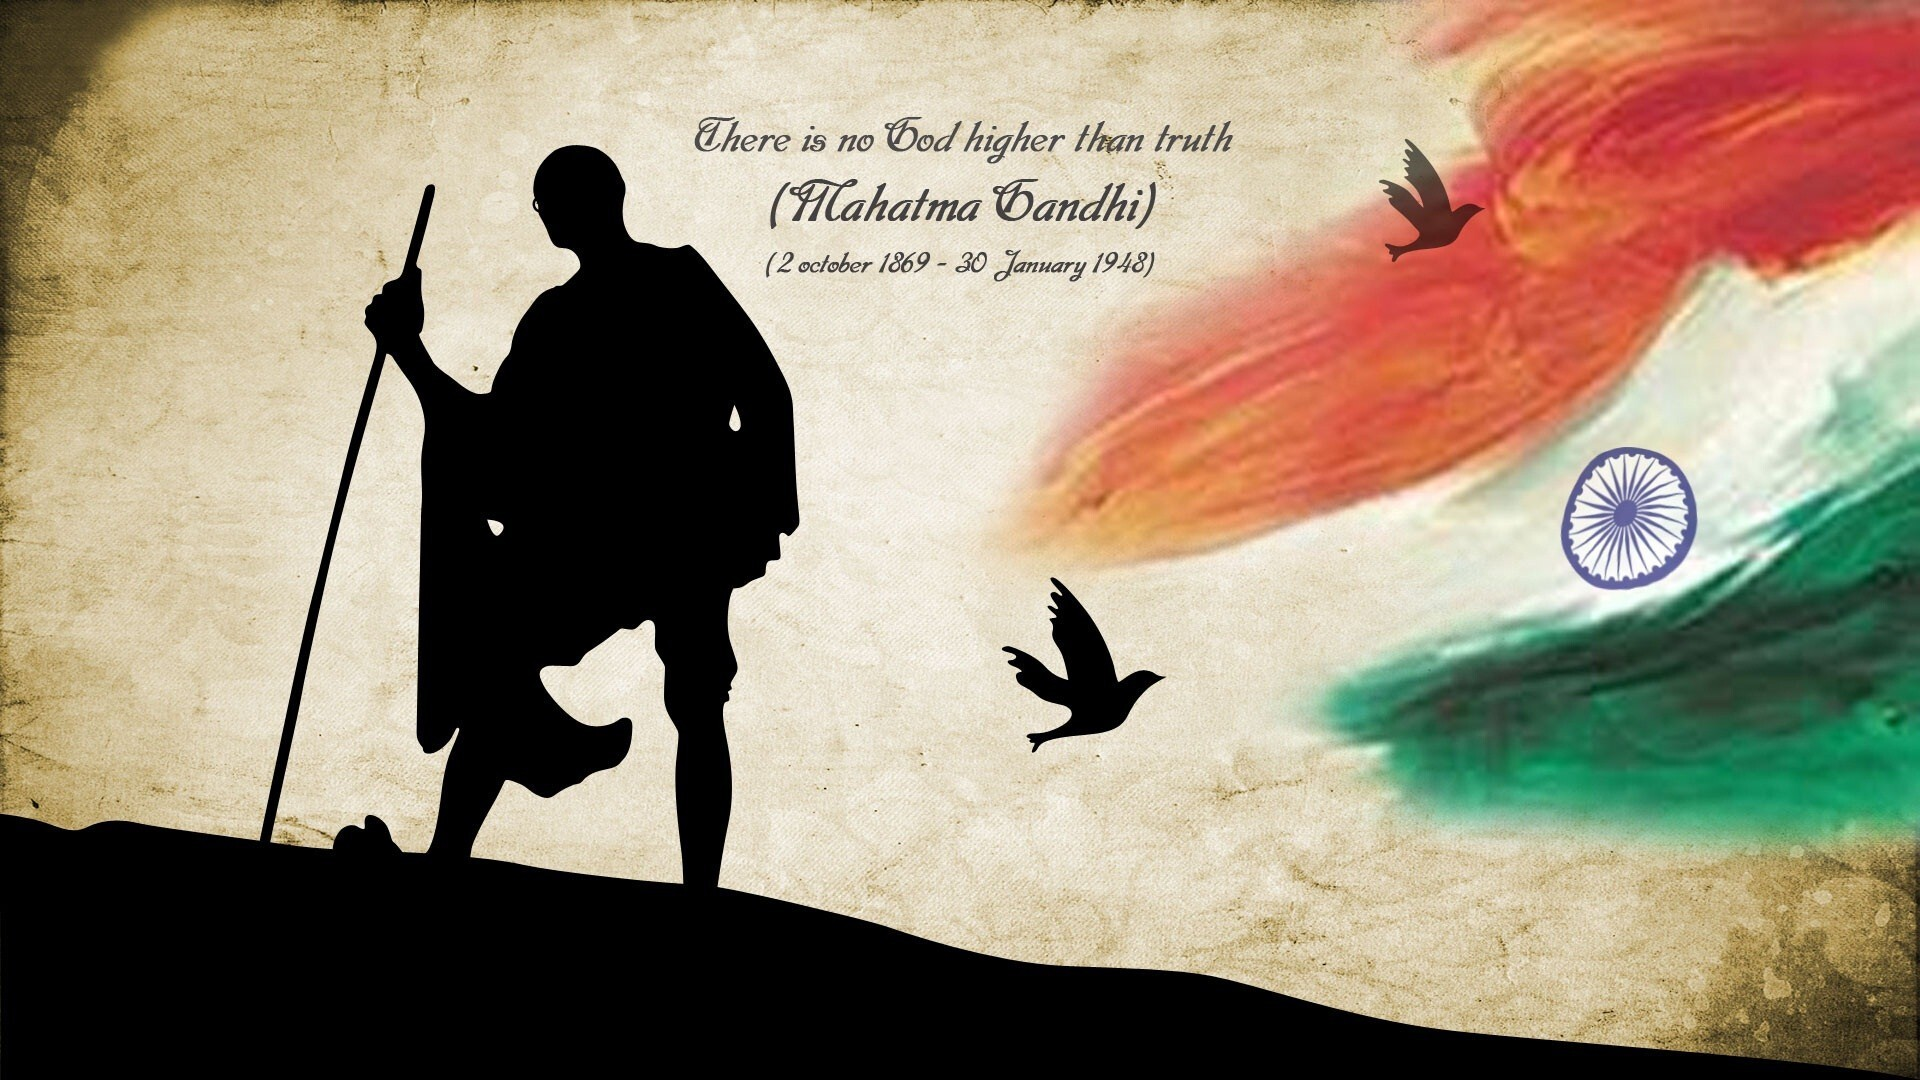 mahatma gandhi hd wallpapers images pictures photos download